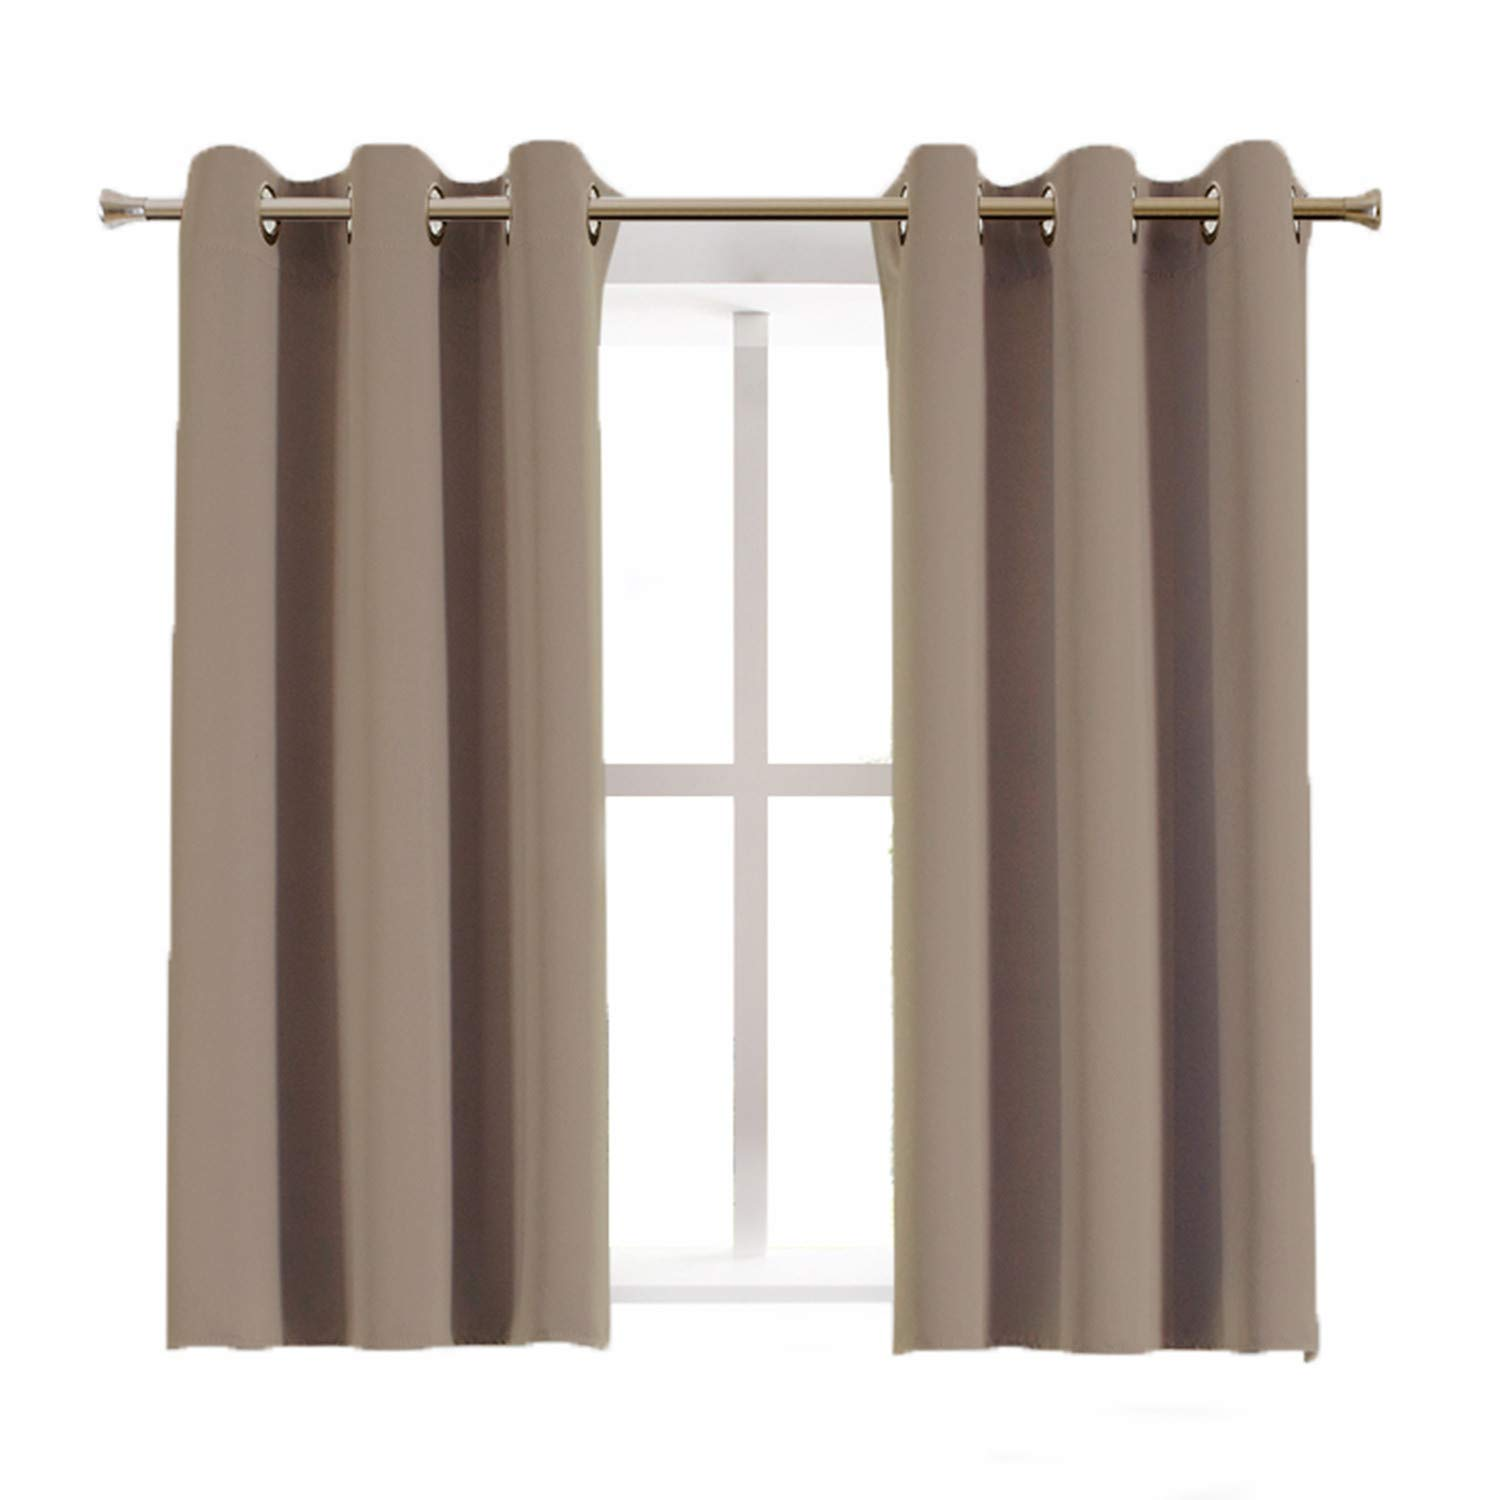 Aquazolax Blackout Curtain Panels for Kitchen Nursery Essential Thermal Insulated Solid Grommet Top Blackout Draperies/Drapes, 1 Pair, 42 x 45 Inch, Taupe/Khaki